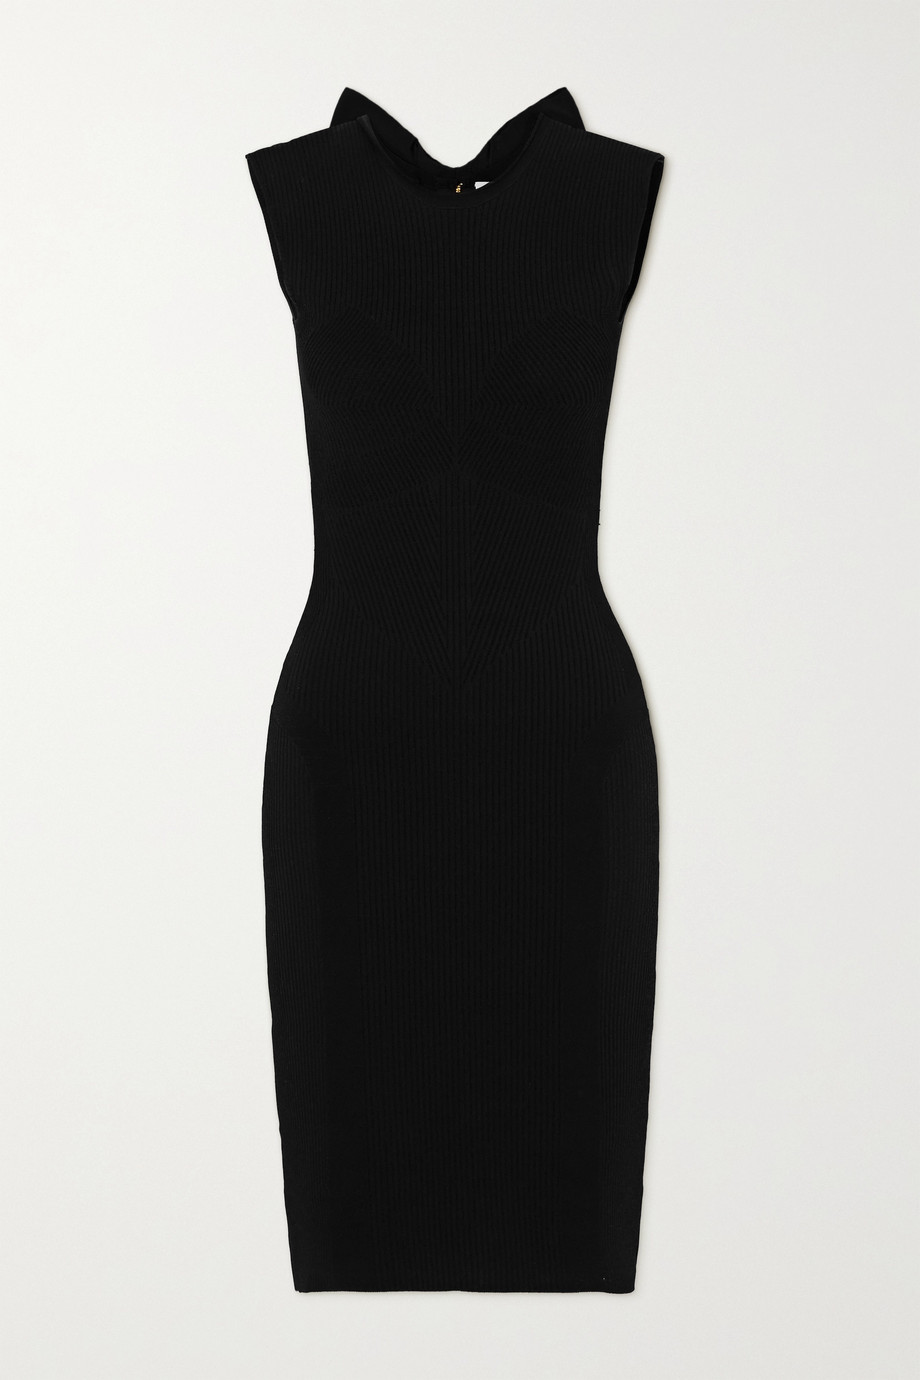 AZ Factory MyBody bow-detailed ribbed stretch-knit dress